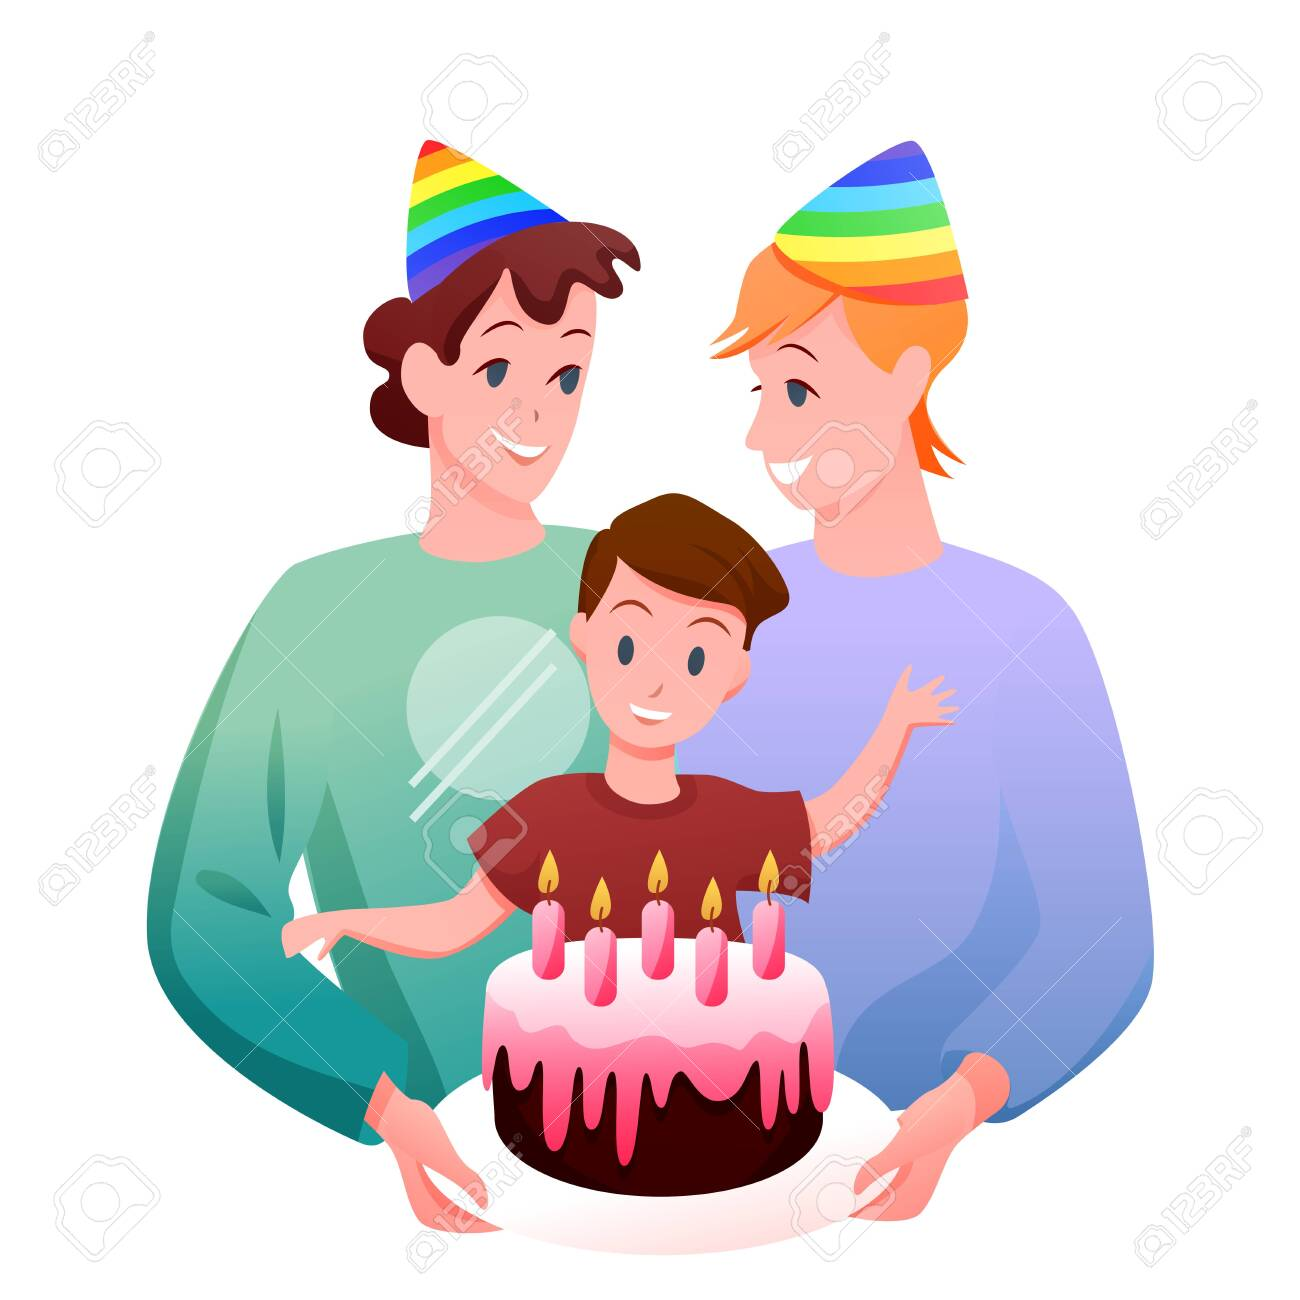 Gay LGBT family celebration vector illustration. Cartoon flat happy man parent characters, two fathers with boy kid celebrating child birthday with gift cake isolated on white - 151954109